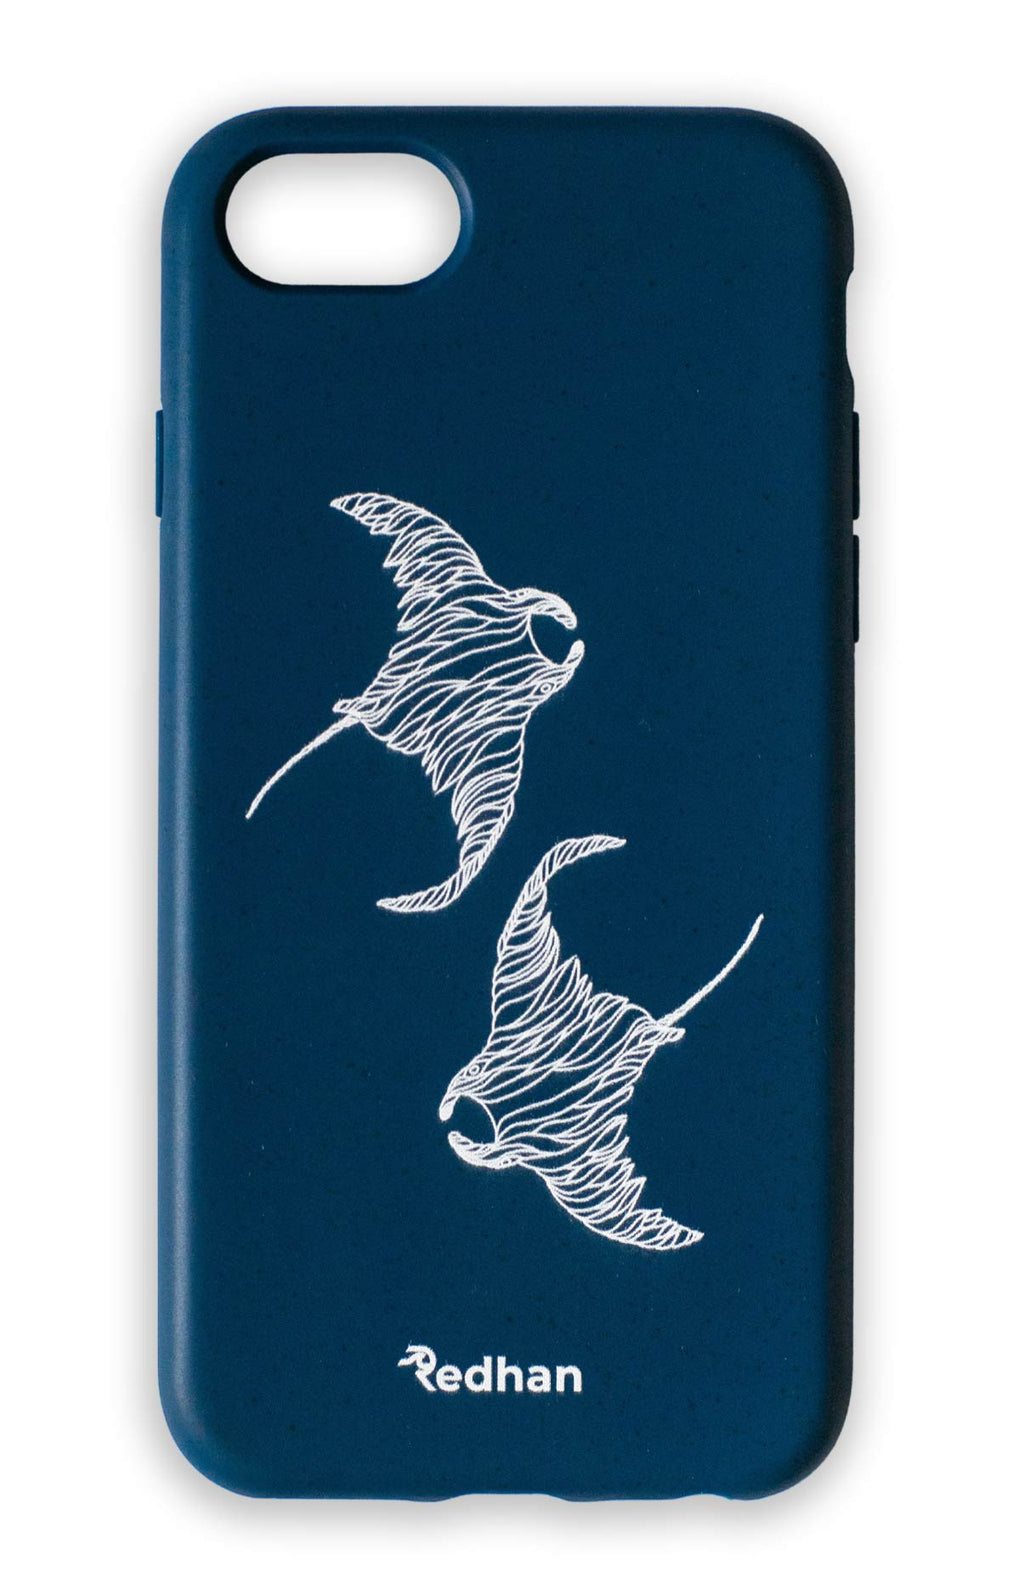 Eco Friendly iPhone 6 / 6S / 7 / 8 / SE (2° Gen) - Manta Fluo in Blue Navy